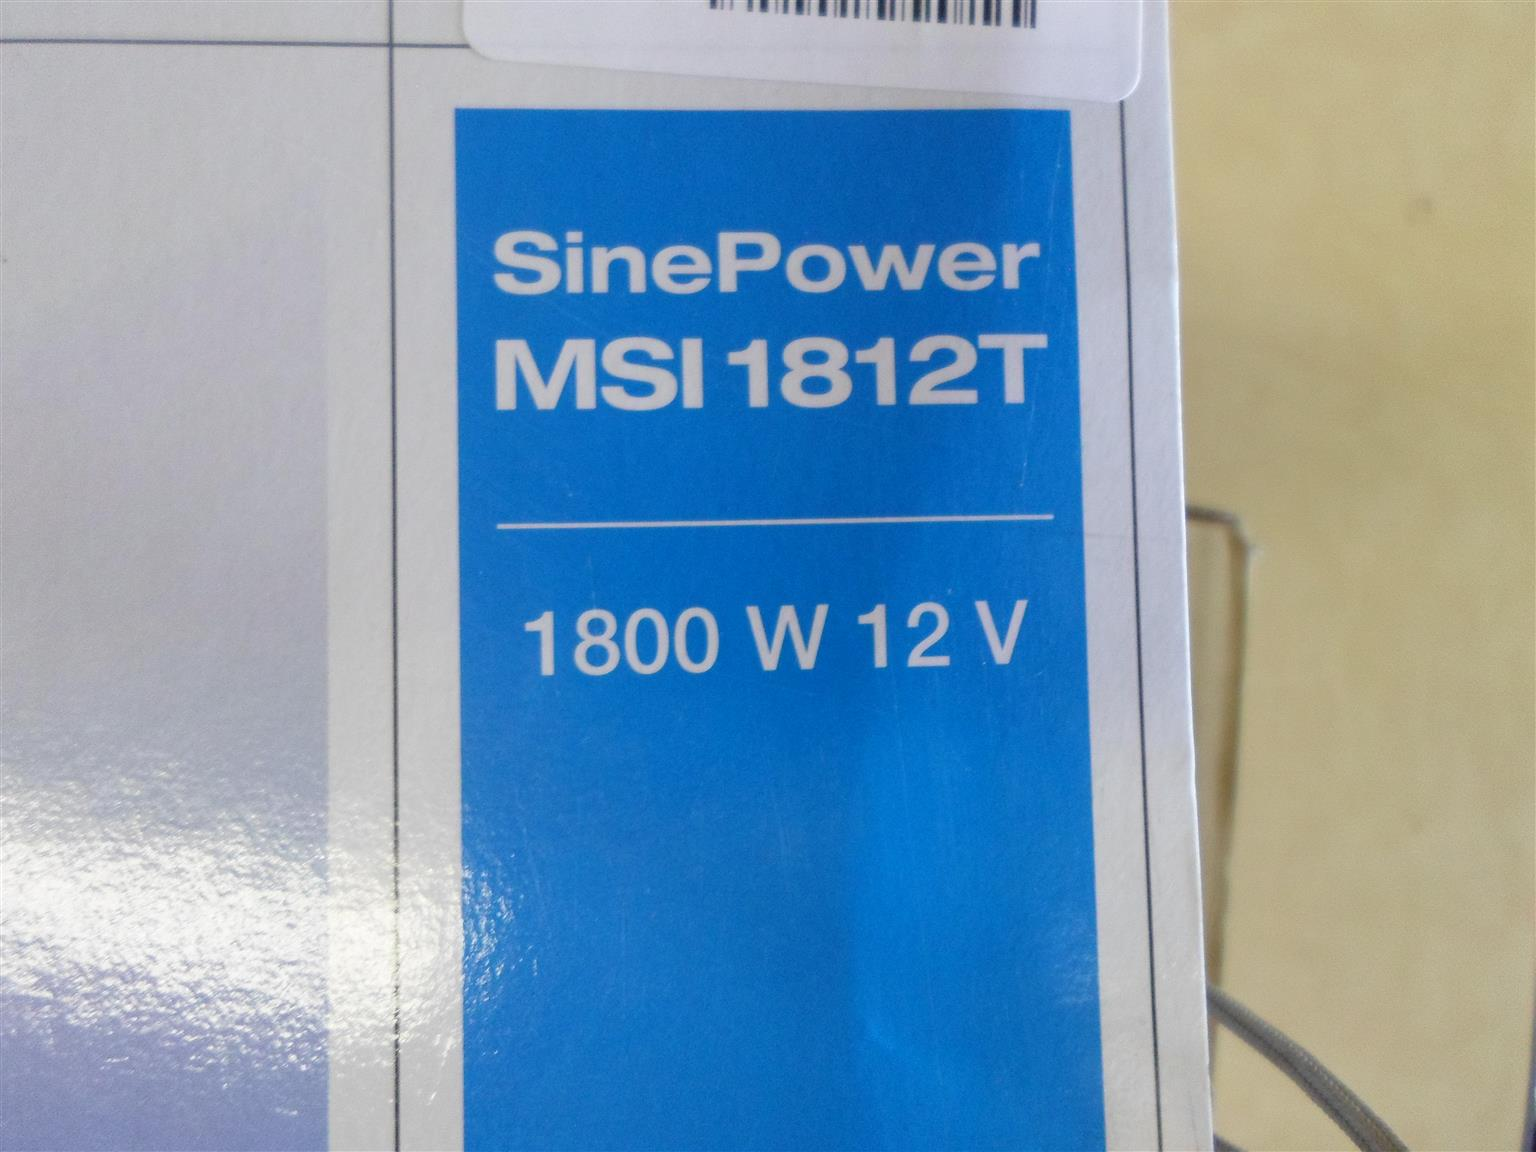 SinePower MSI 1812T Inverter (12V-230V)